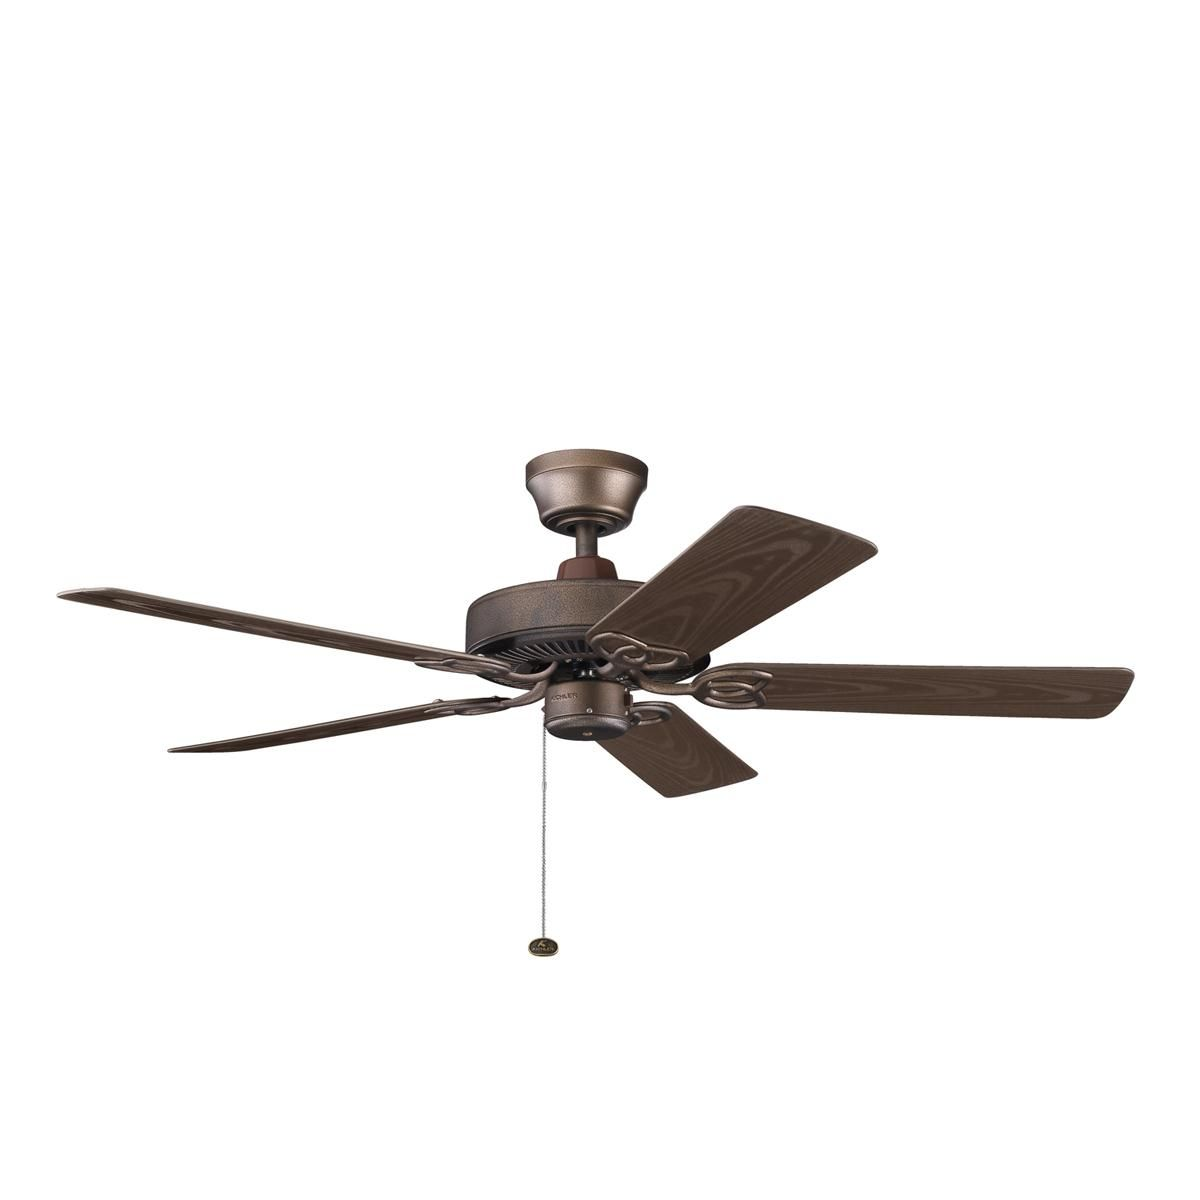 Pin By Elitefixtures Com Home Product On Ceiling Fans Ceiling Fan Windmill Ceiling Fan Ceiling Fan With Light